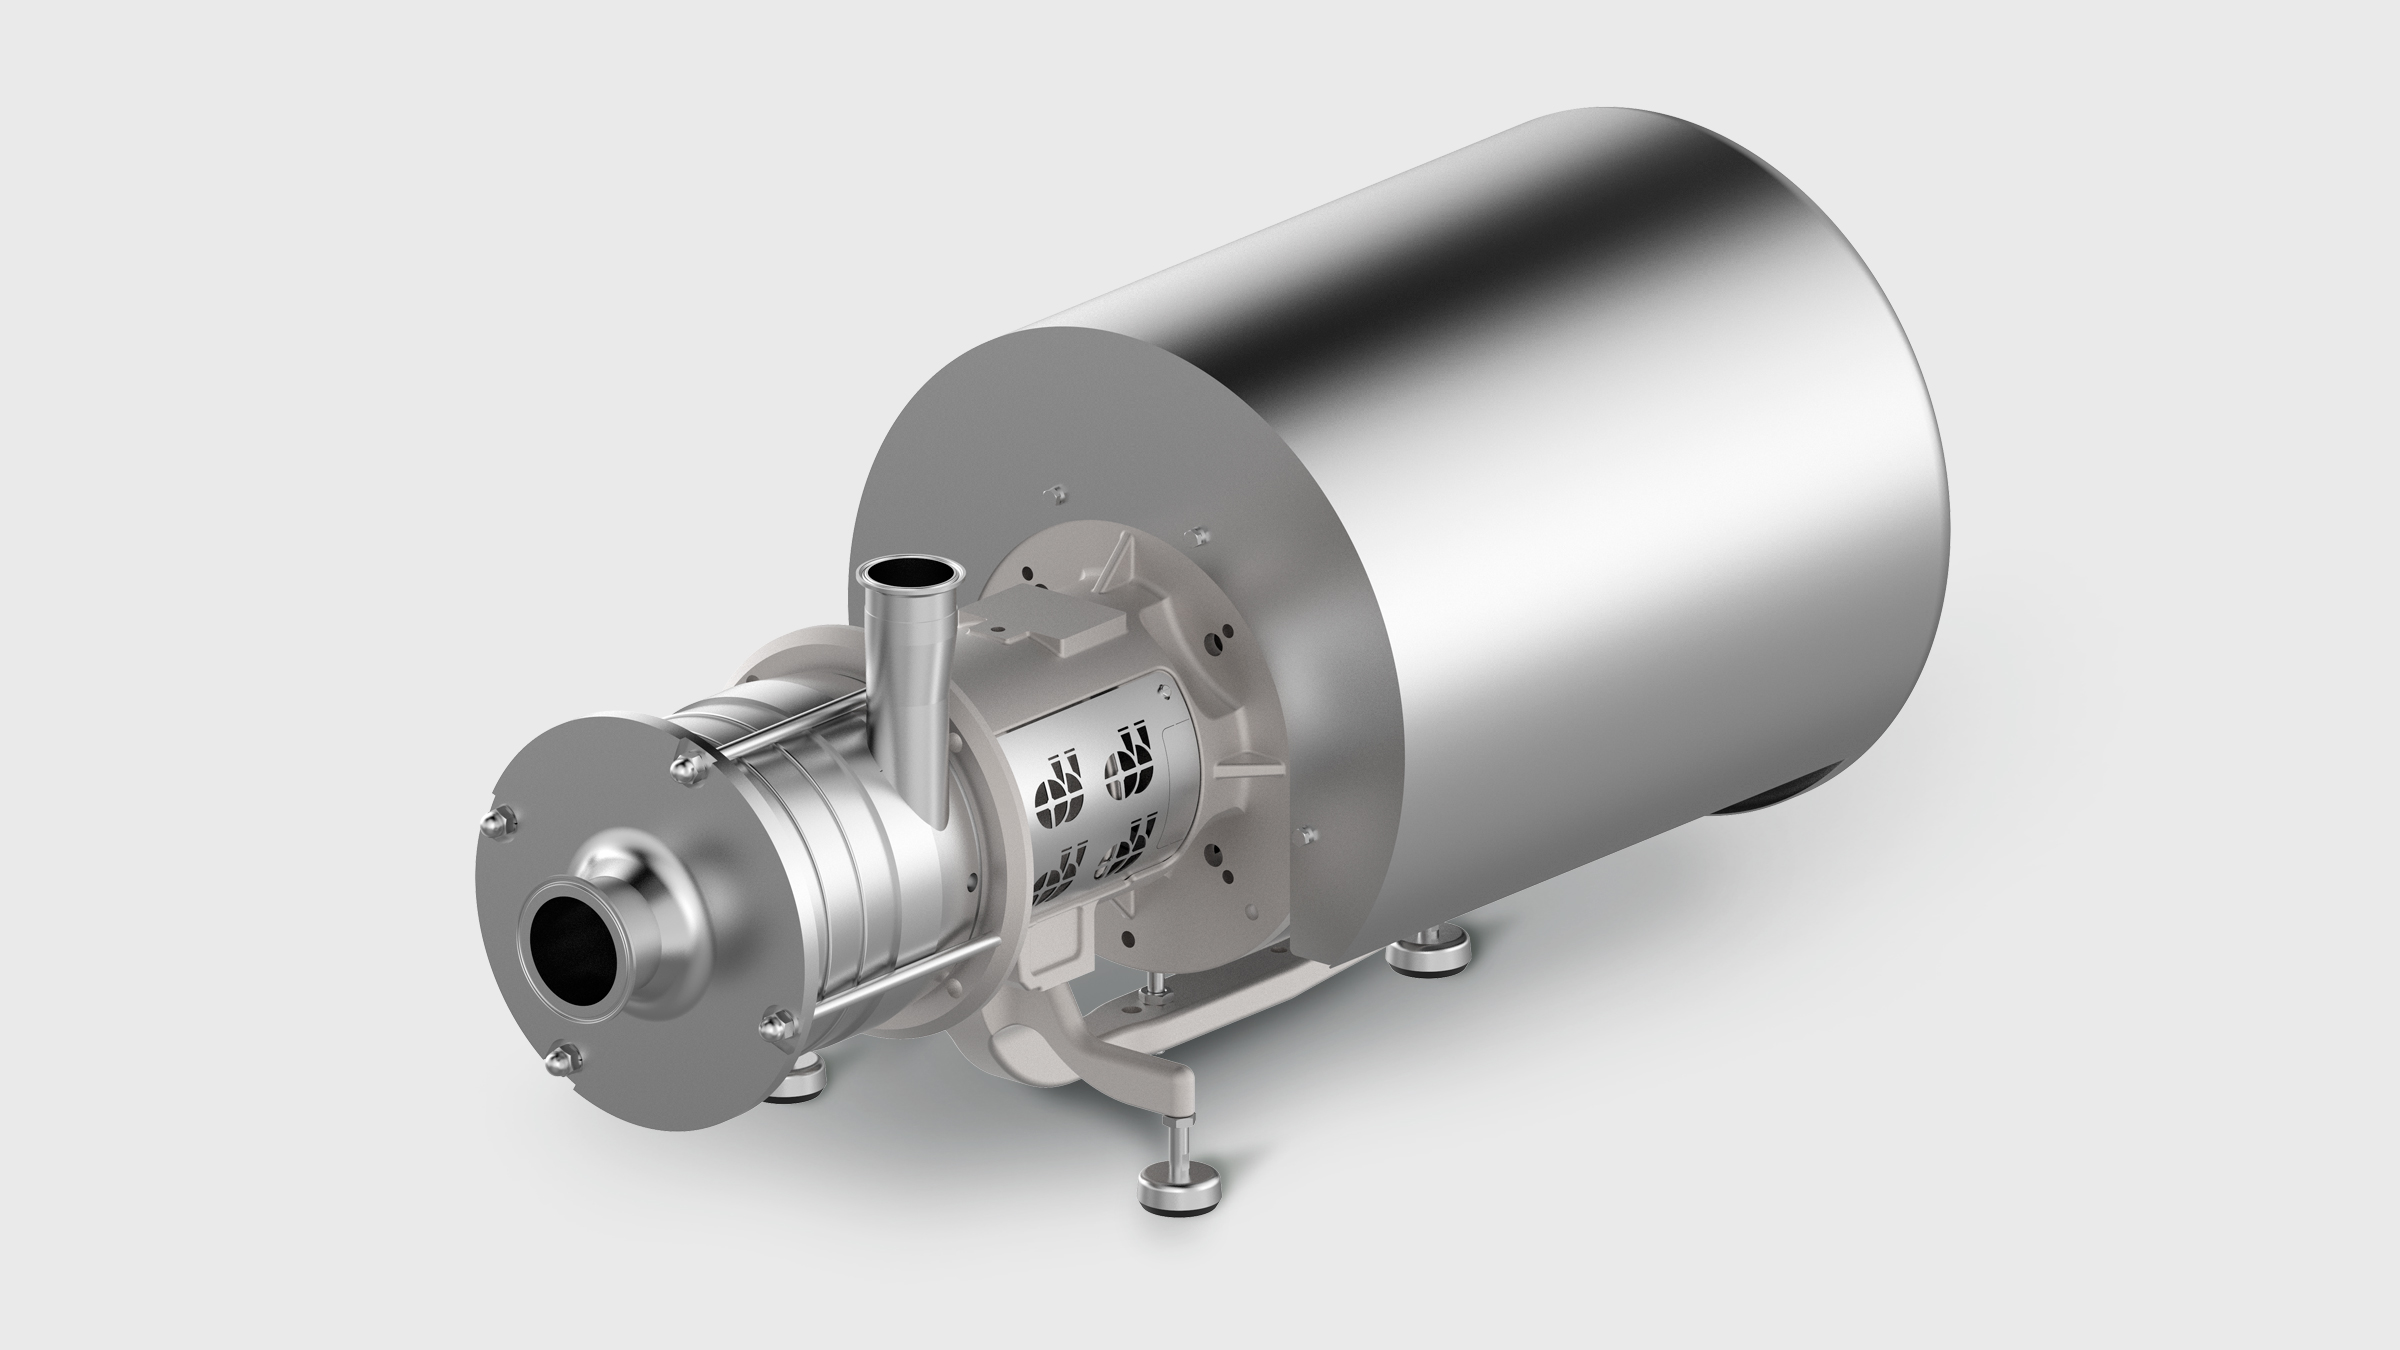 GEA Hilge CONTRA | Single- and multi-stage pumps for demanding ...